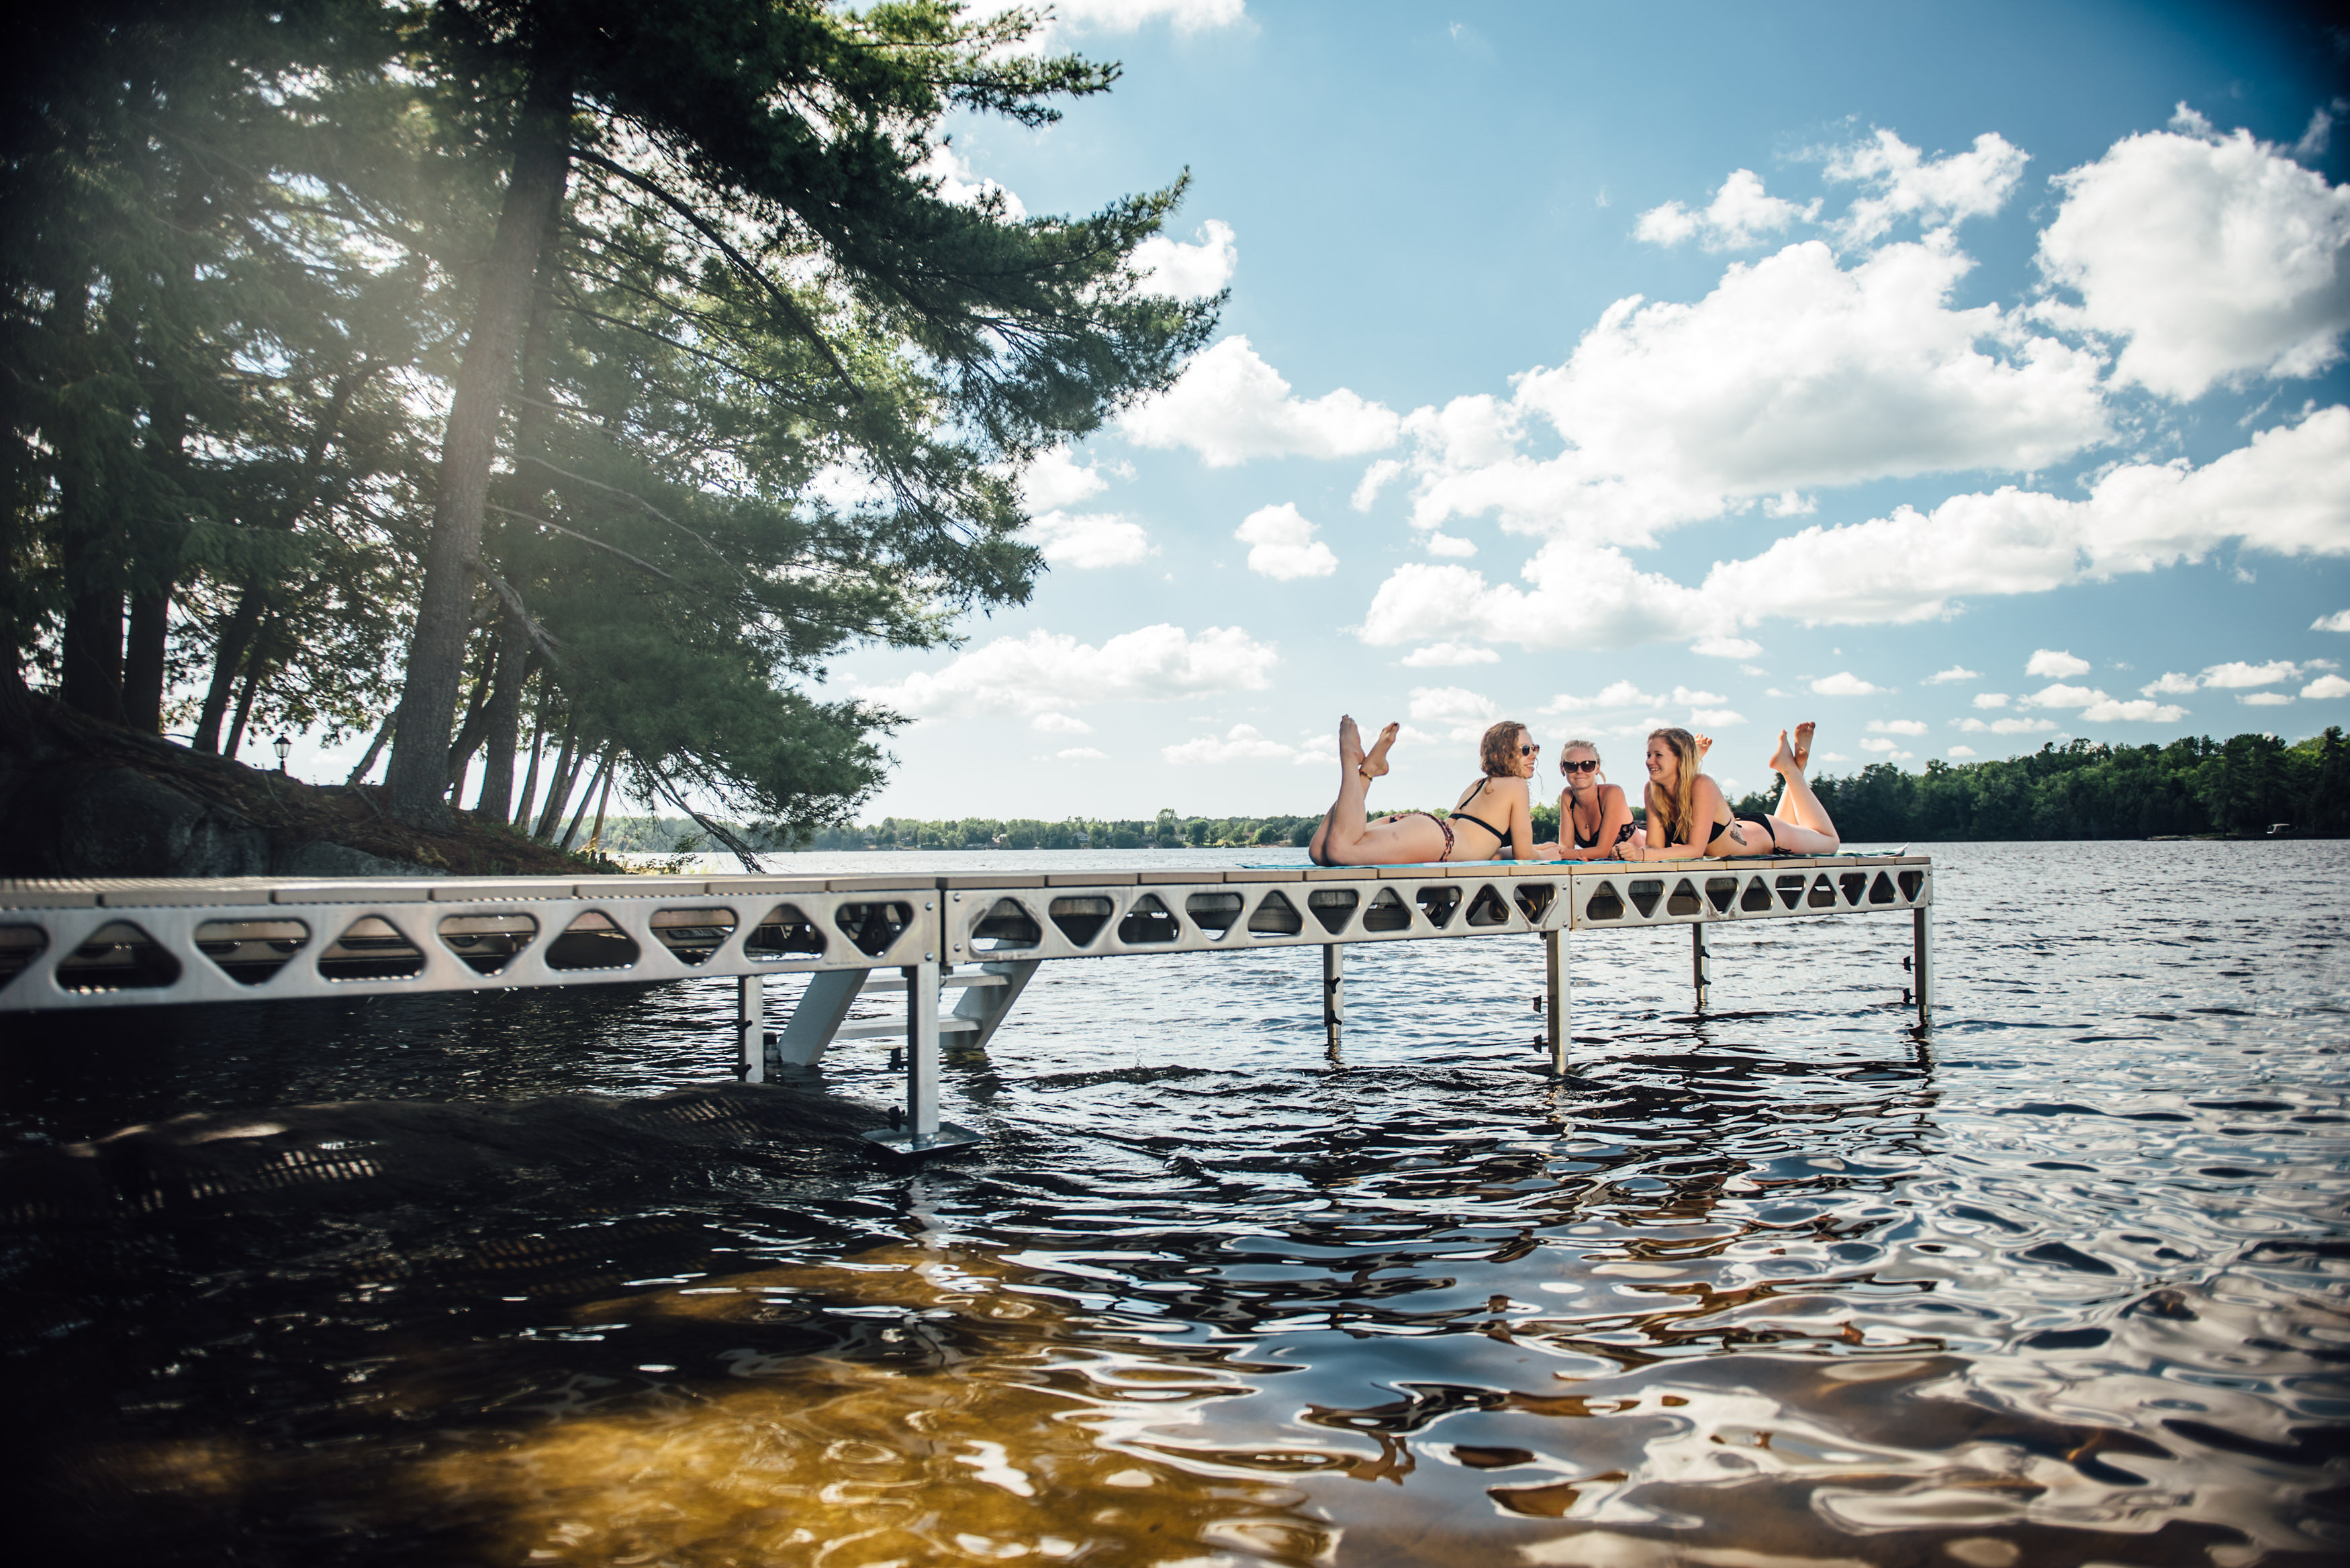 Girls Sunbathing on CanadaDock 4x8 standing dock section